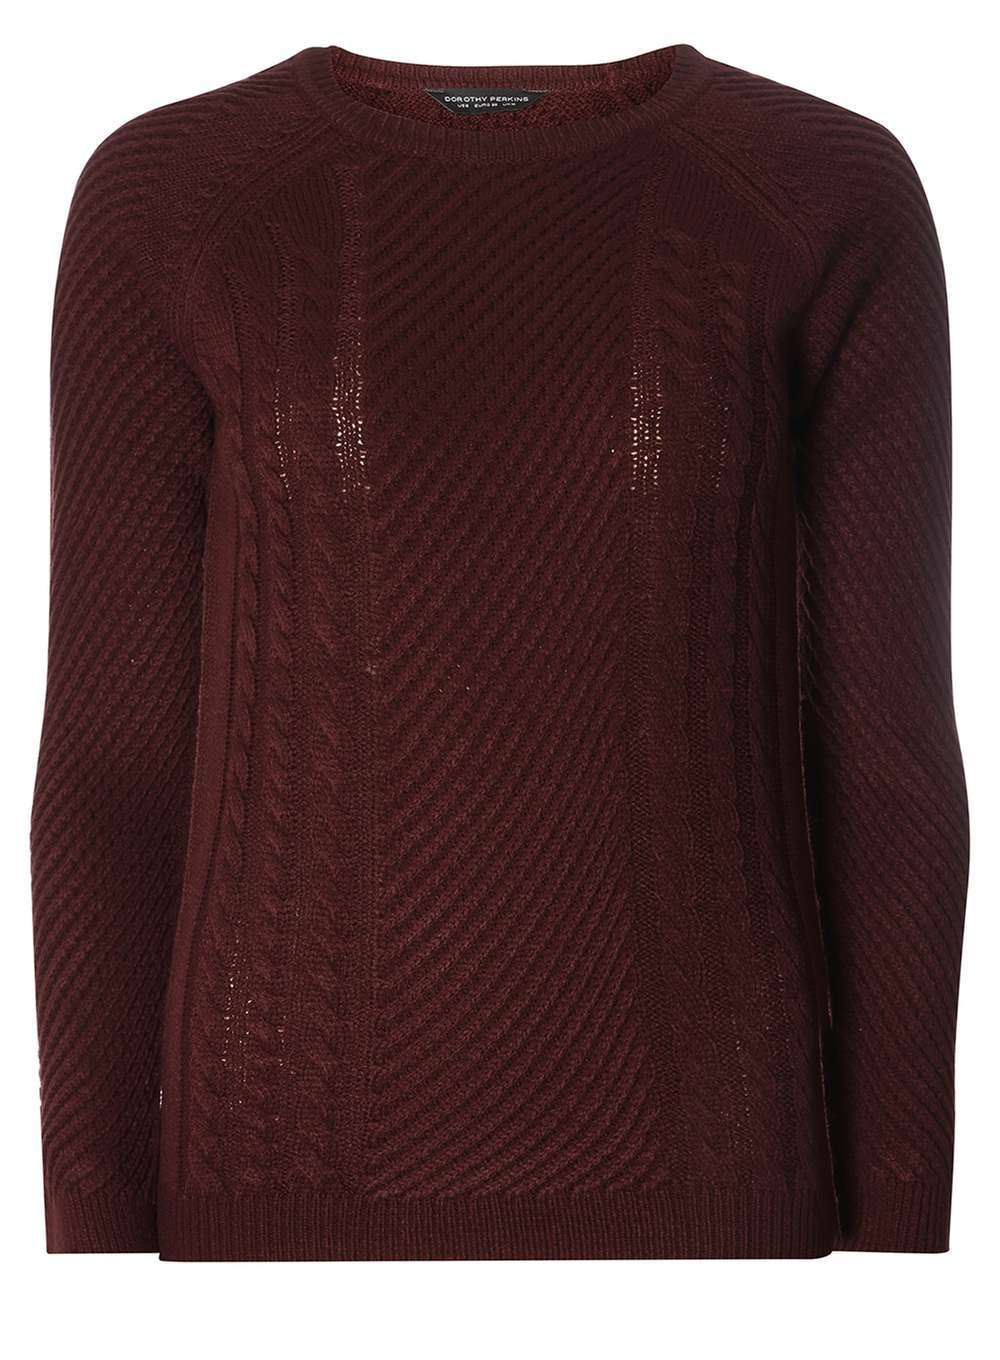 Womens **Tall Berry Cable Detail Jumper Red - pattern: plain; style: standard; predominant colour: burgundy; occasions: casual; length: standard; fibres: acrylic - 100%; fit: slim fit; neckline: crew; sleeve length: long sleeve; sleeve style: standard; texture group: knits/crochet; pattern type: knitted - fine stitch; season: a/w 2016; wardrobe: highlight